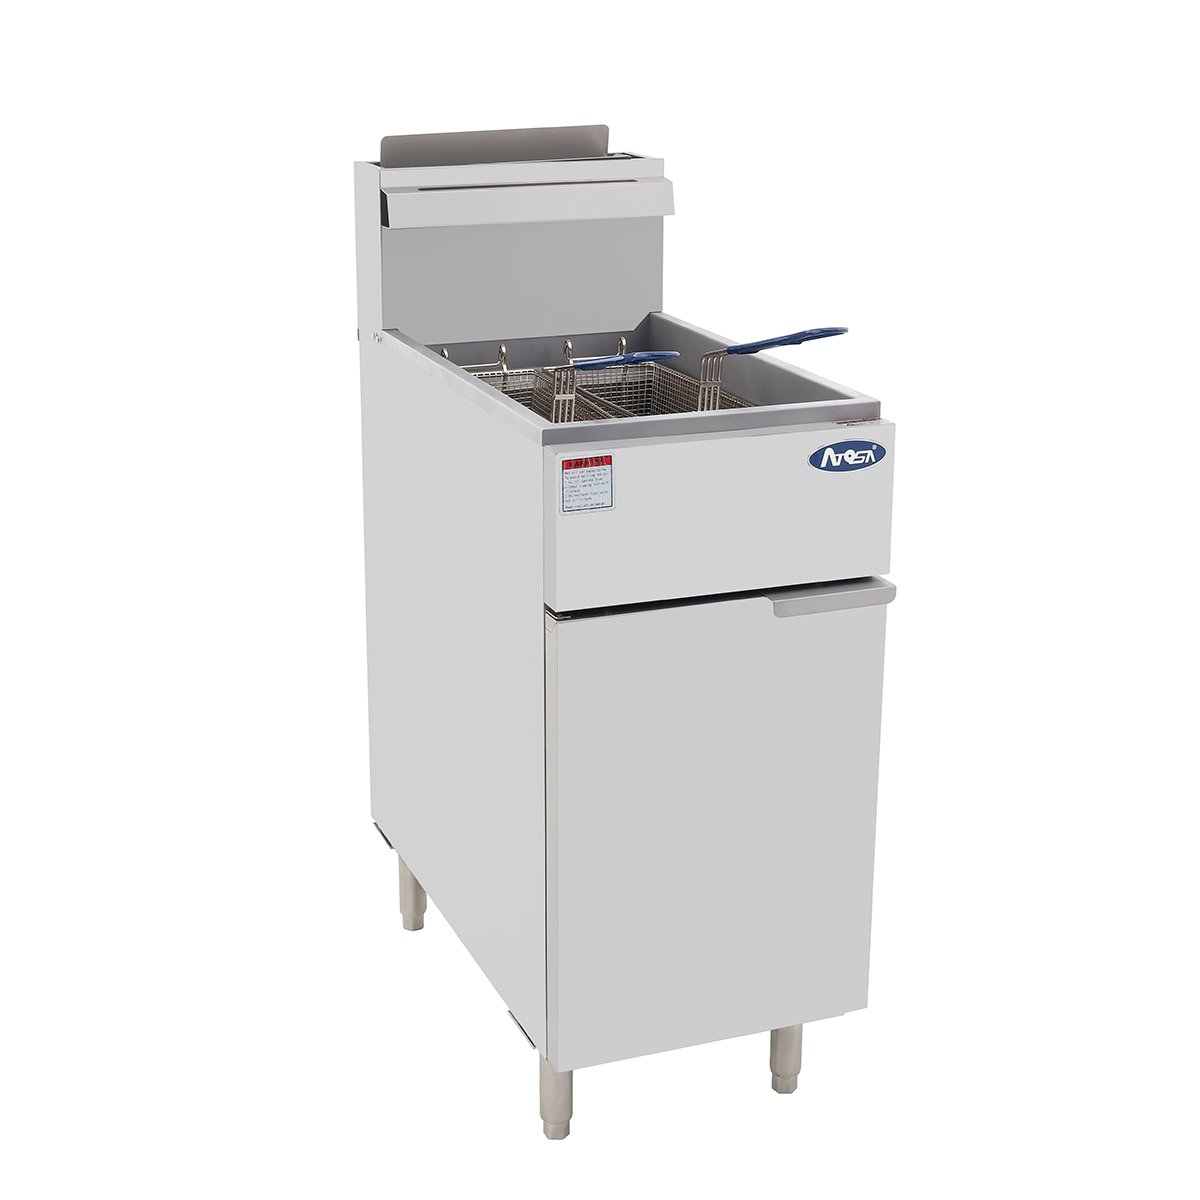 Atosa USA ATFS-50 (High BTU 120k) Heavy Duty 50 lbs Stainless Steel Deep Fryer - Propane